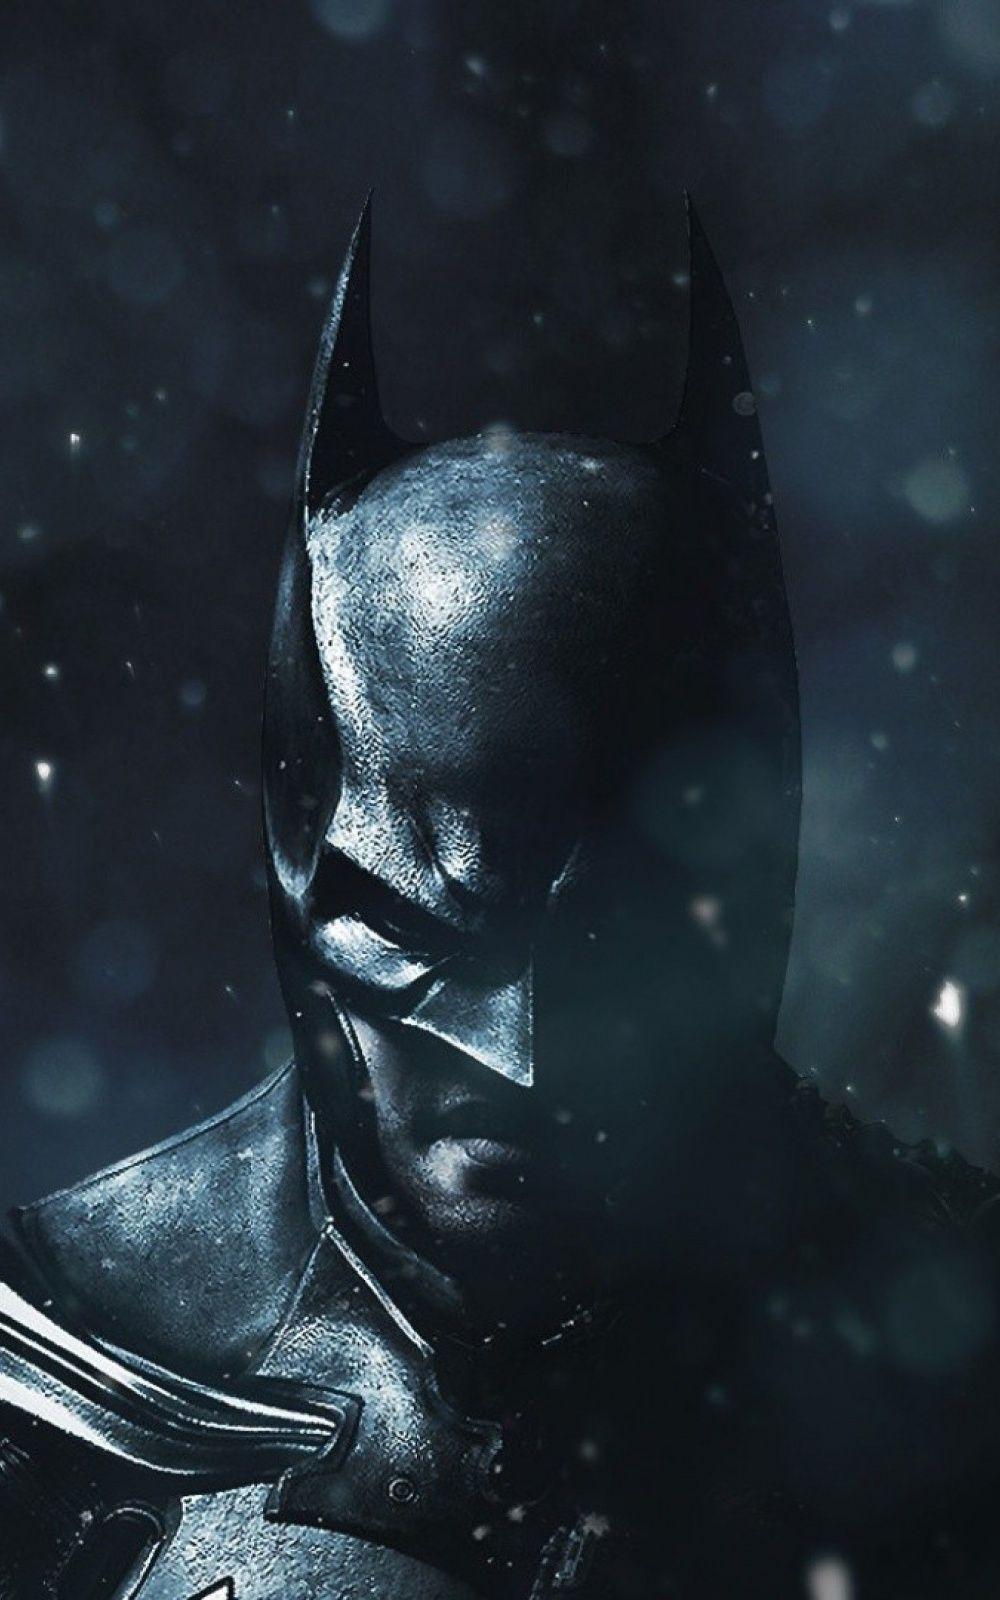 Batman Falling Snow Android Wallpapers free download